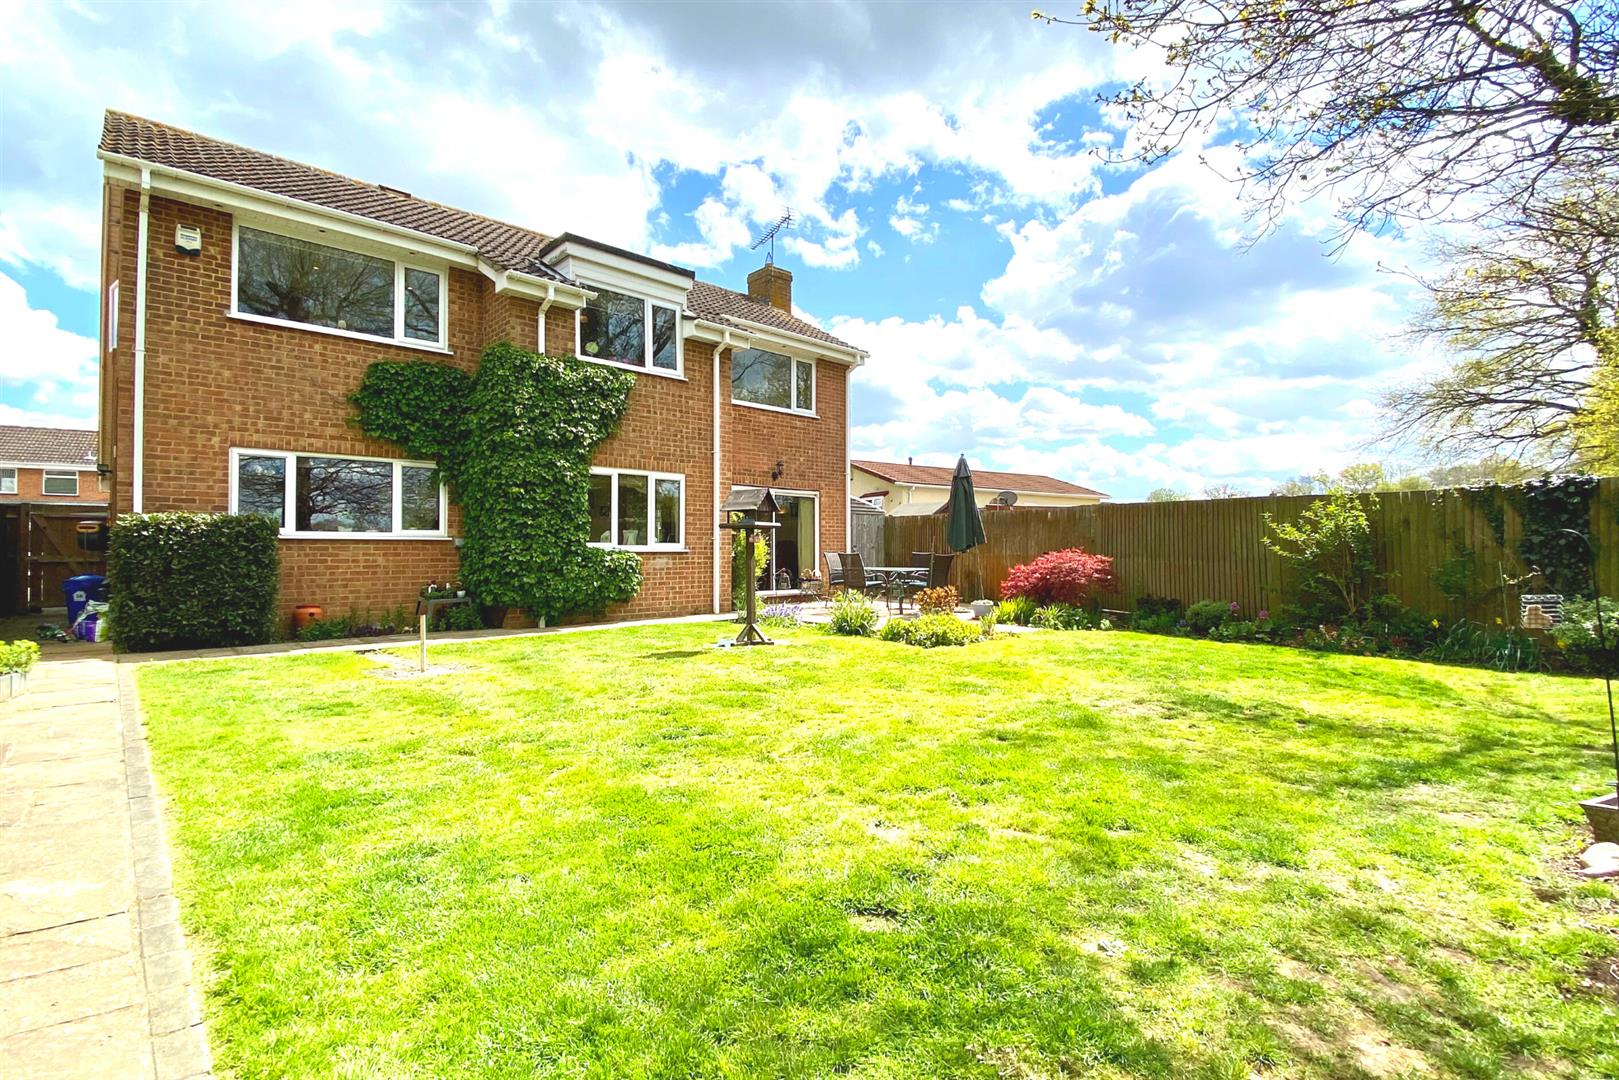 4 bed detached for sale in Winnersh  - Property Image 2